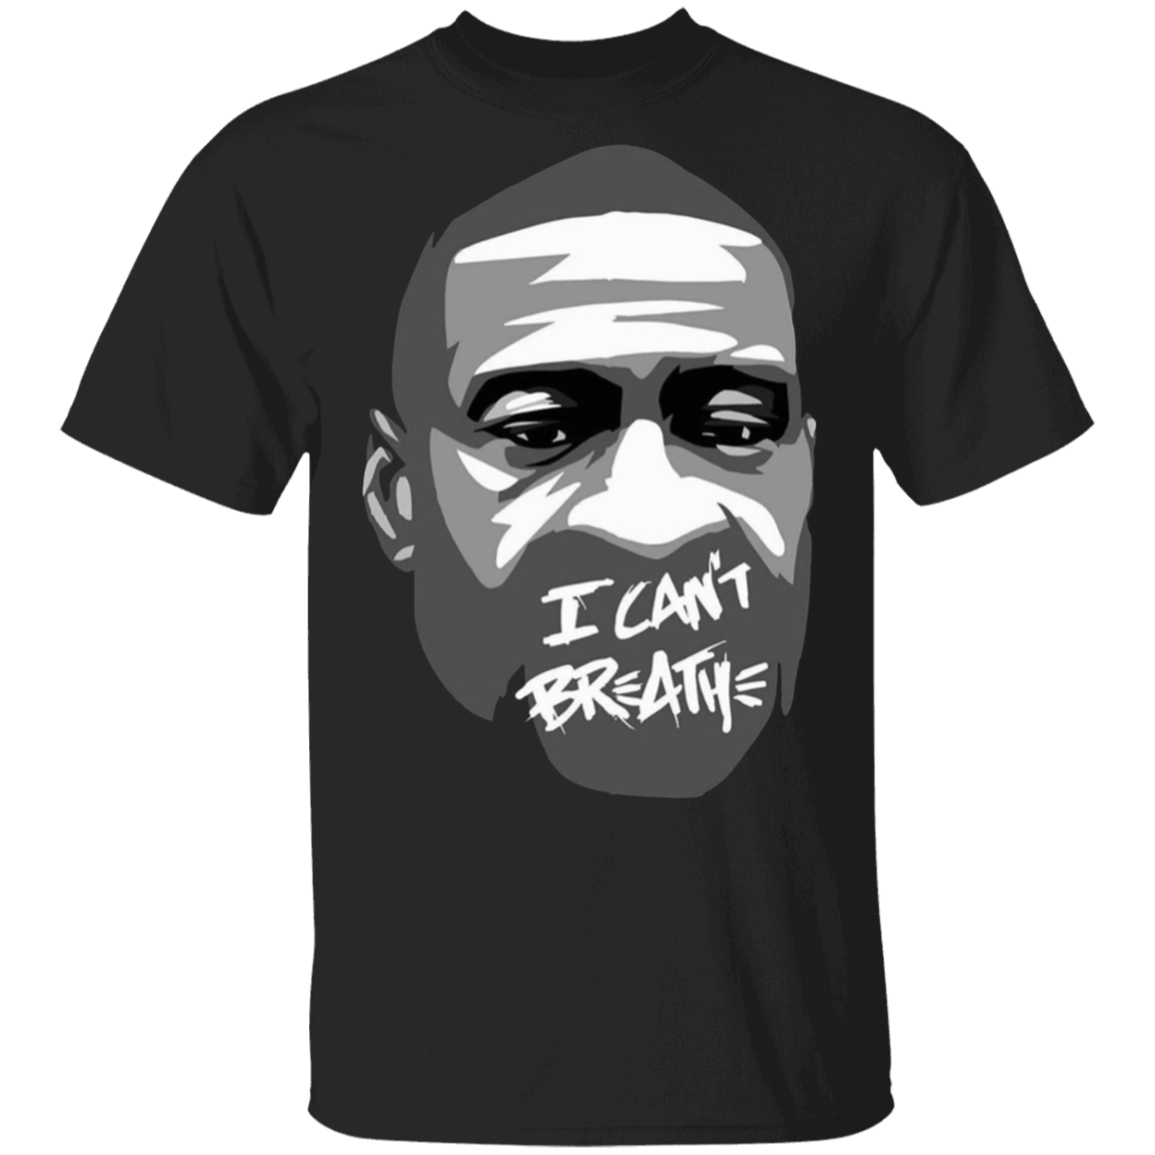 I Can't Breathe T-Shirt - George Floyd T-Shirt Justice For George Floyd Art